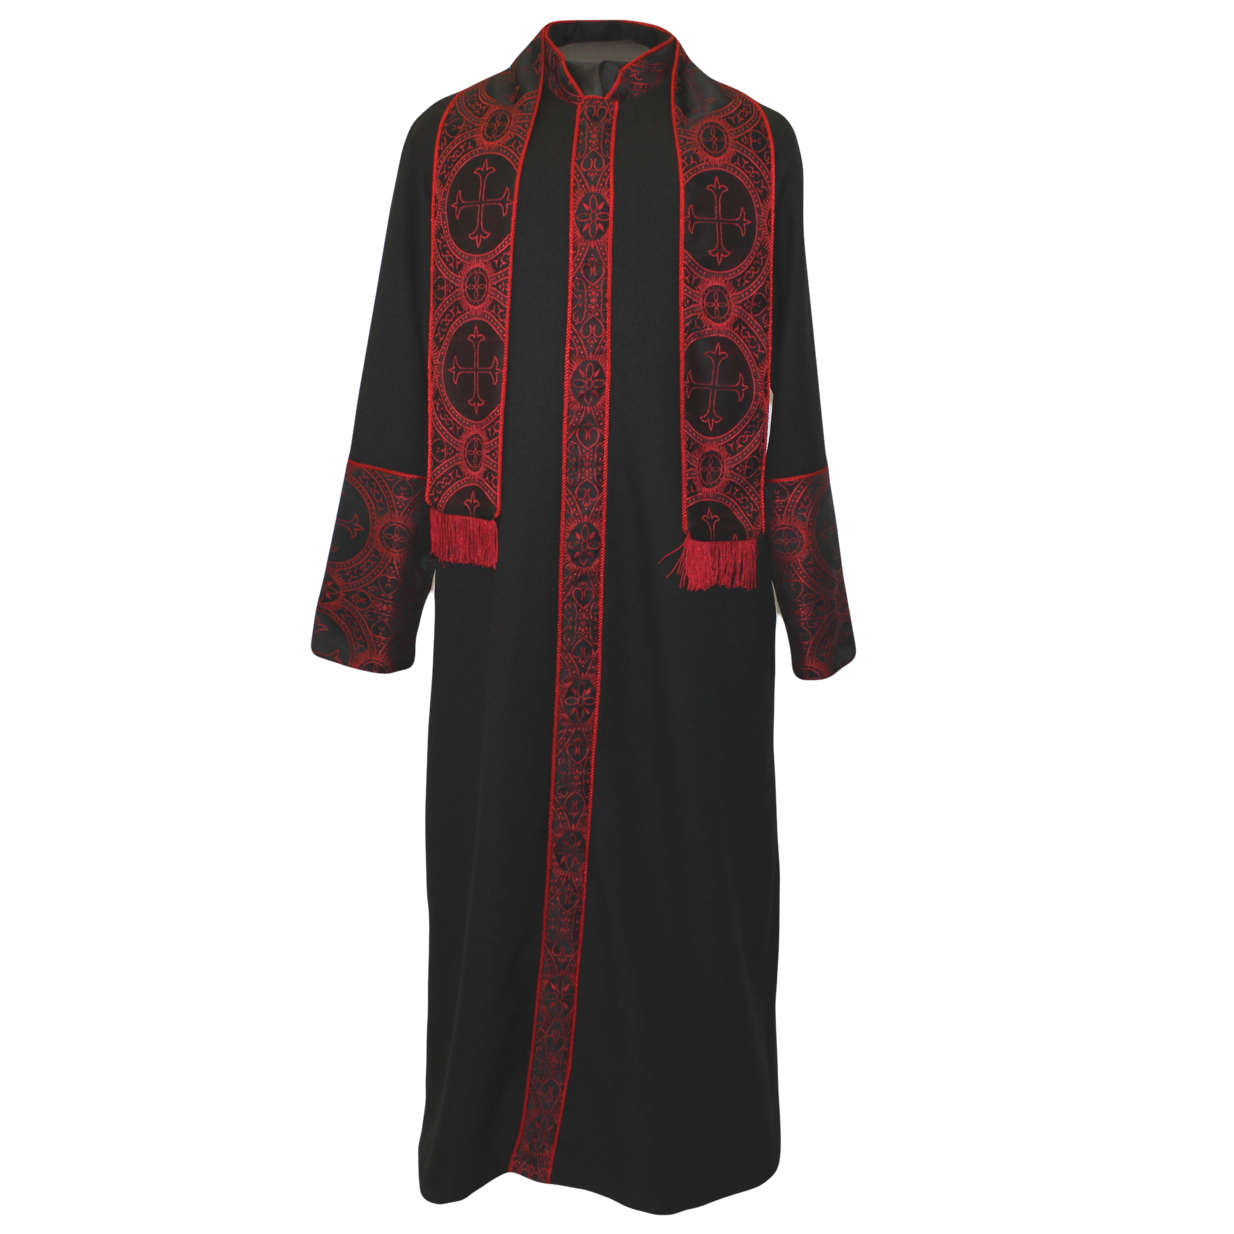 Black and Red Robe 1.jpg